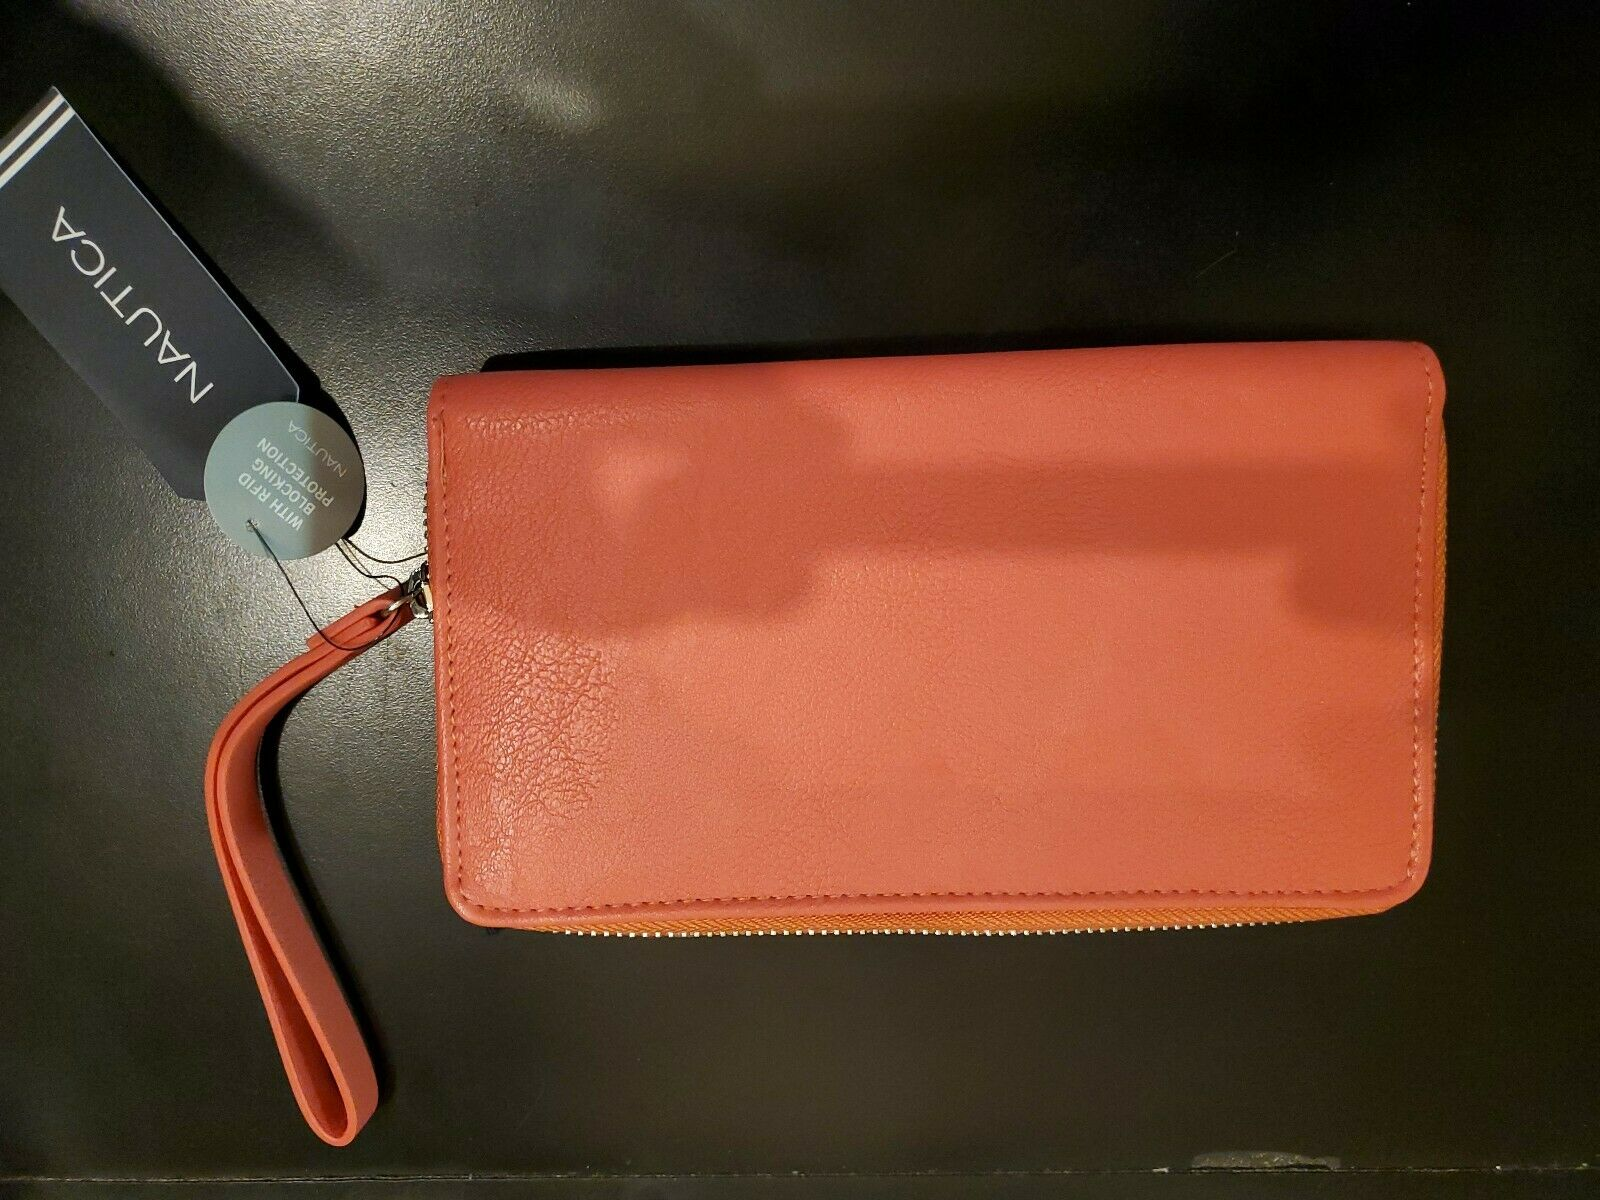 NauticaPlain Sailing RFID Clutch with Removable Strap Wristlet, Spice Coral